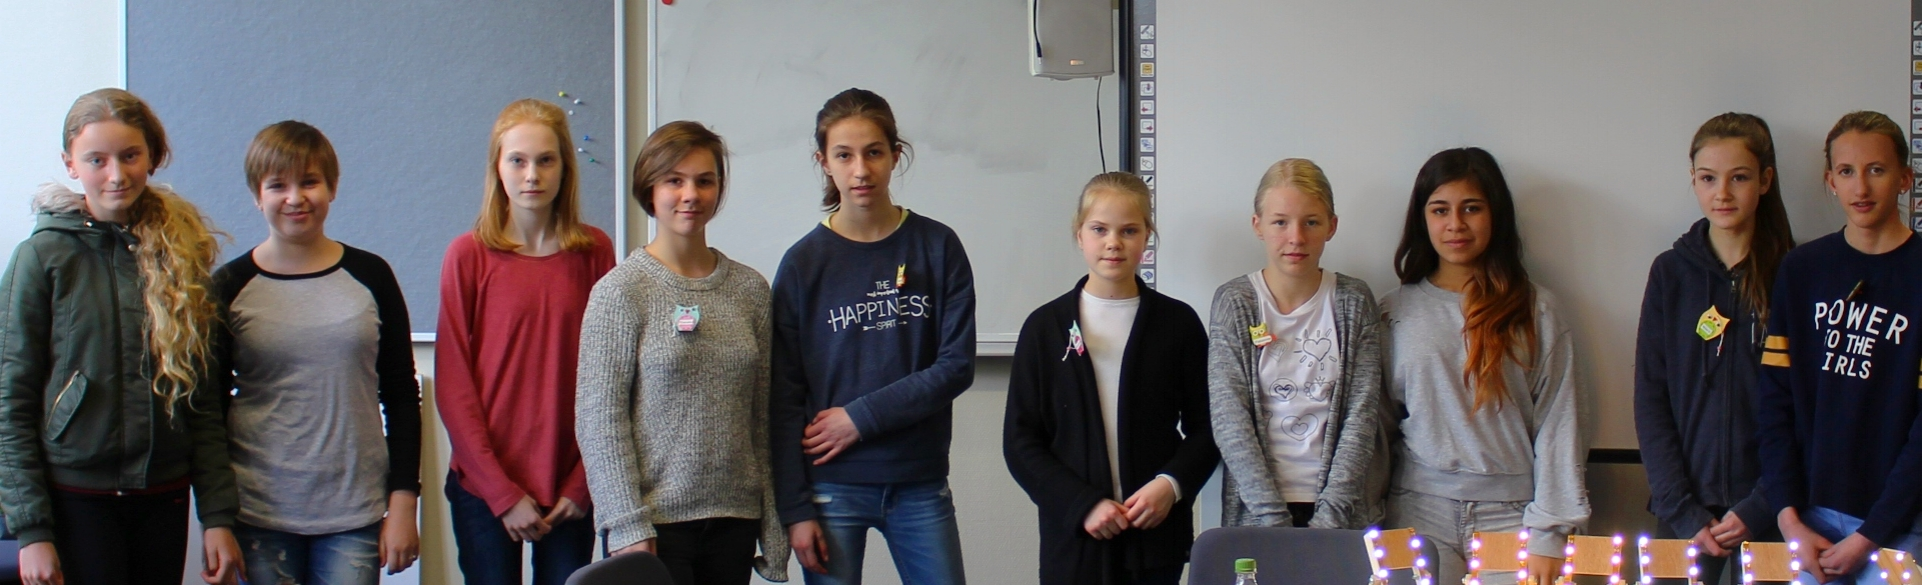 Girlsday an der JPRS